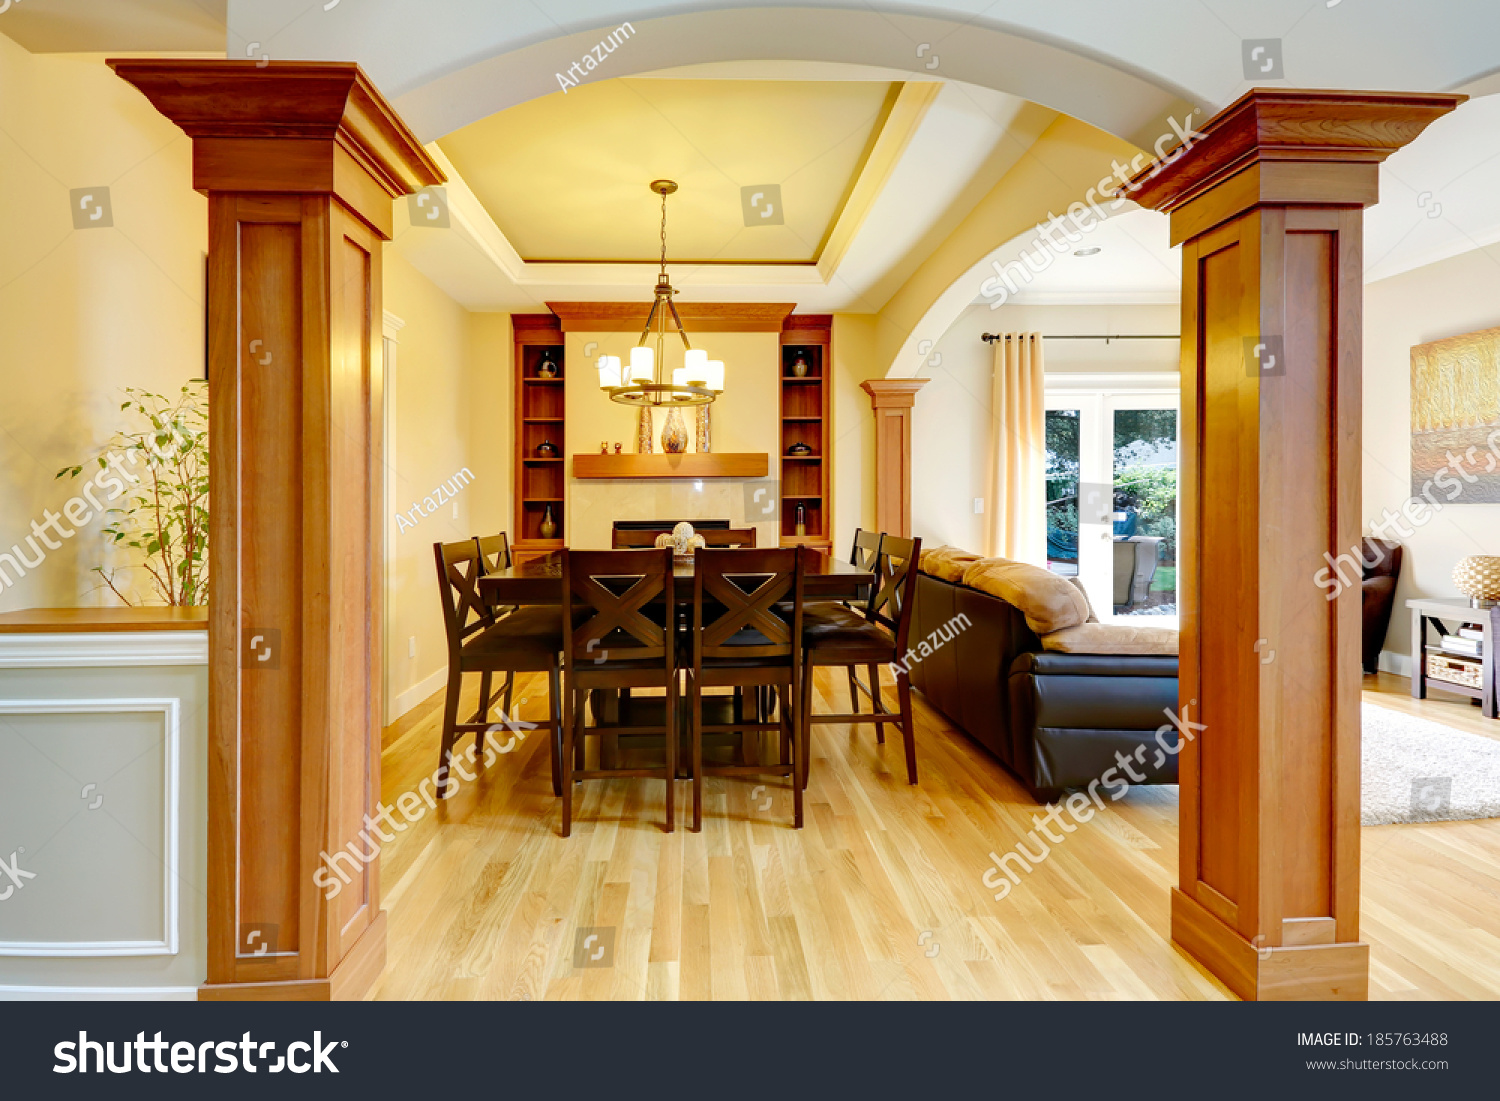 luxury dining room column arch view stock photo 185763488 luxury dining room with column arch view of classic dining table set